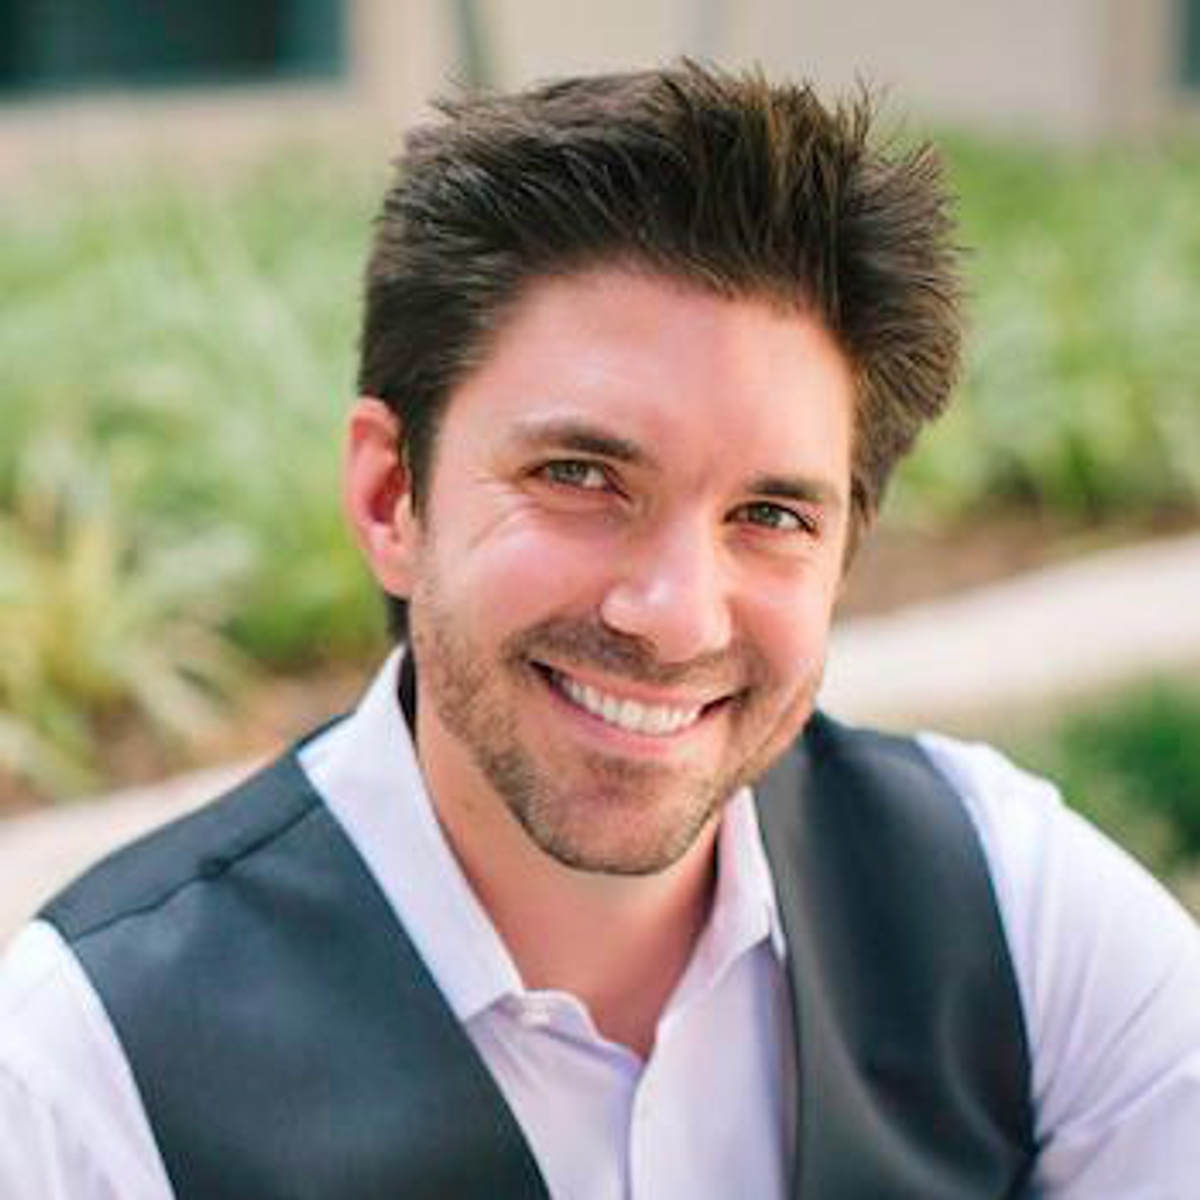 Ep 112: Passion with Jerod the podcaster